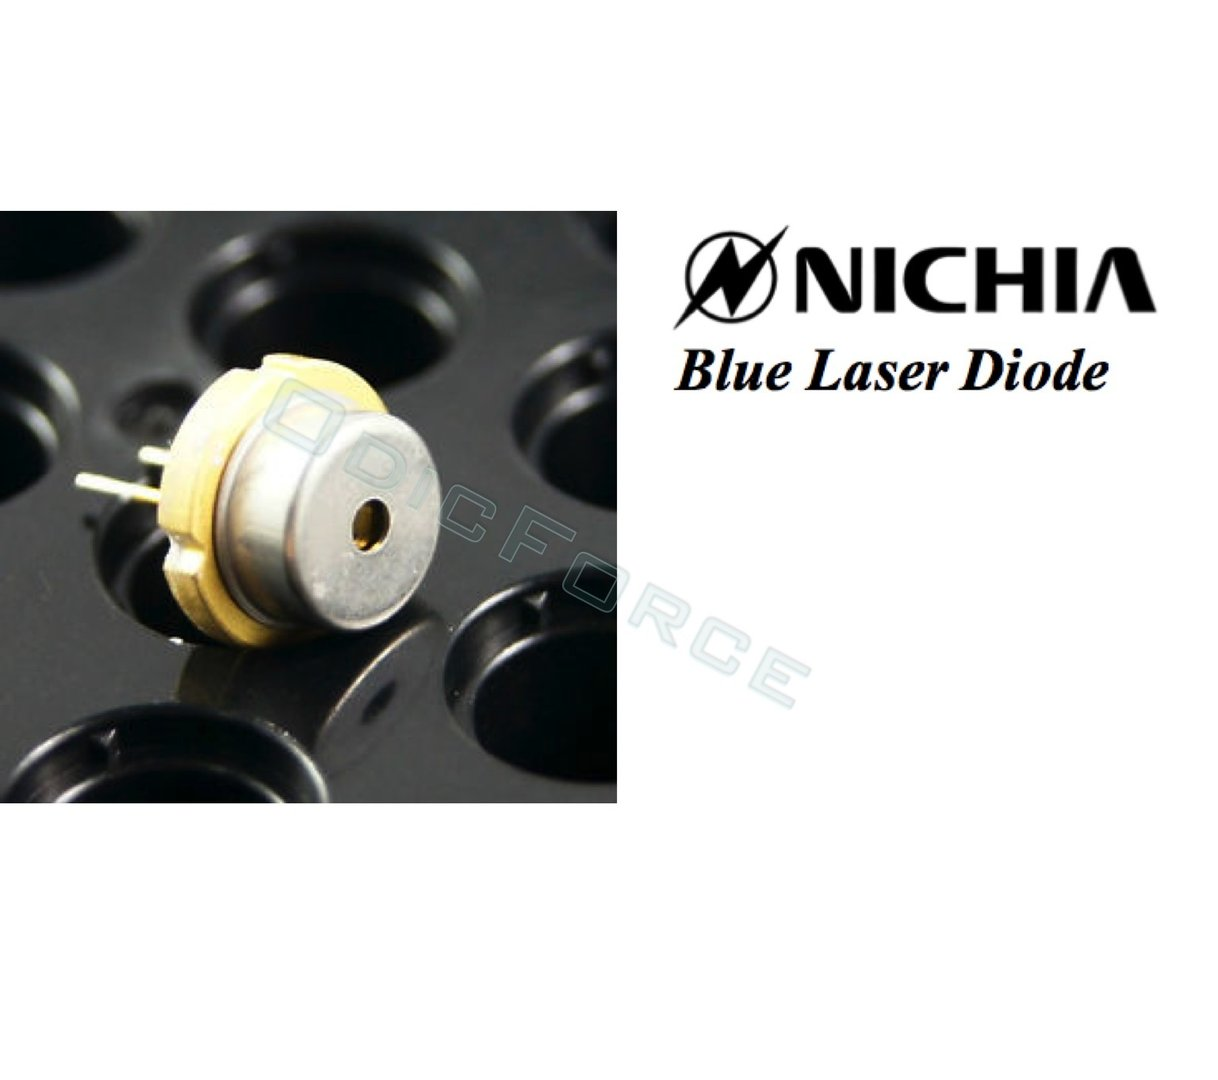 Nichia 1.6W+ 450nm Blue Laser Diode (9mm) NDB7875 (New, original part)